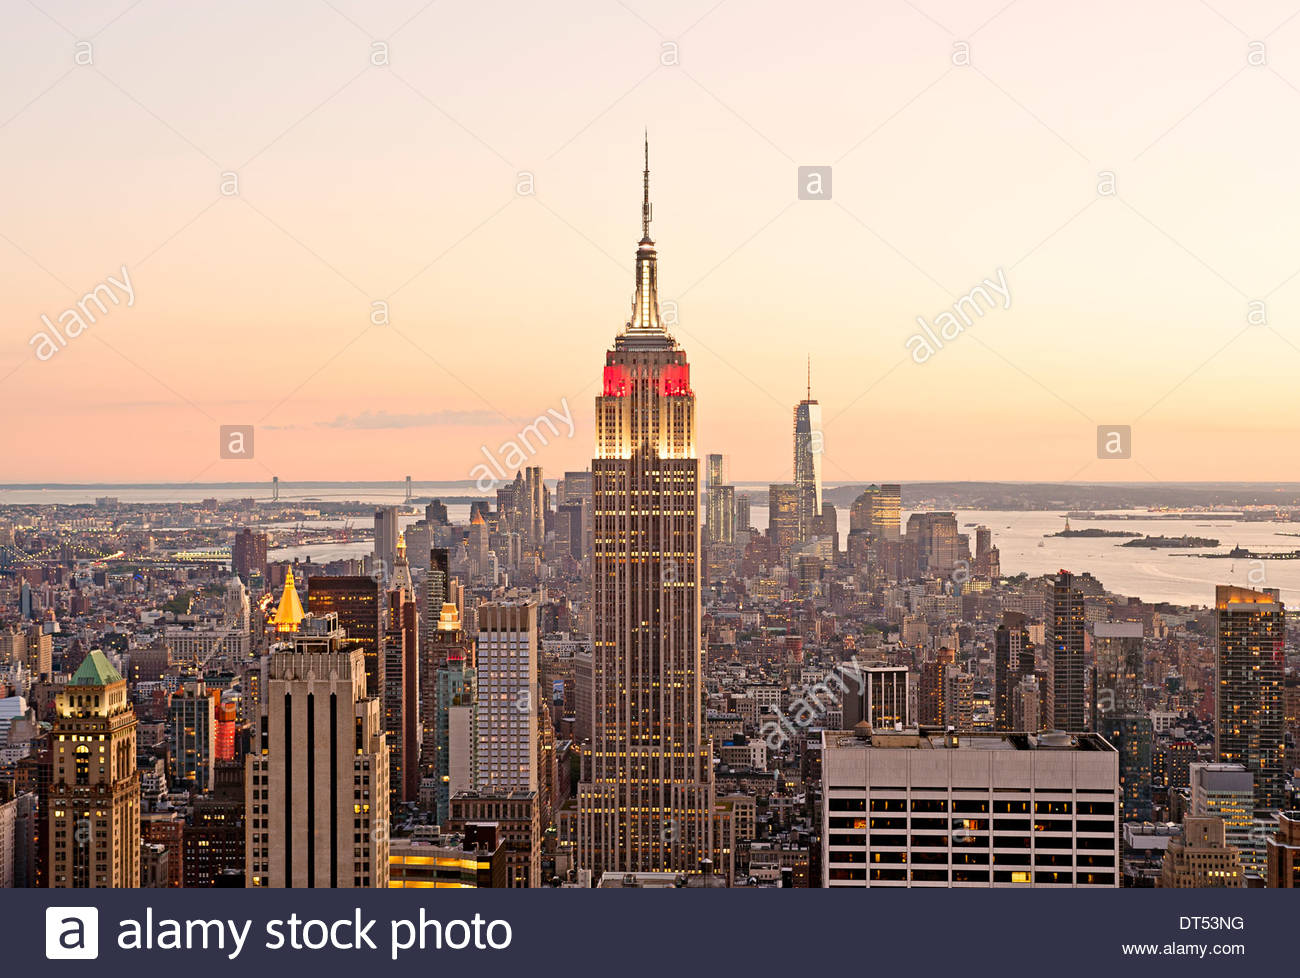 New York Skyline Manhattan New York City Skyline Empire State Building View of New at Dusk - Stock Image